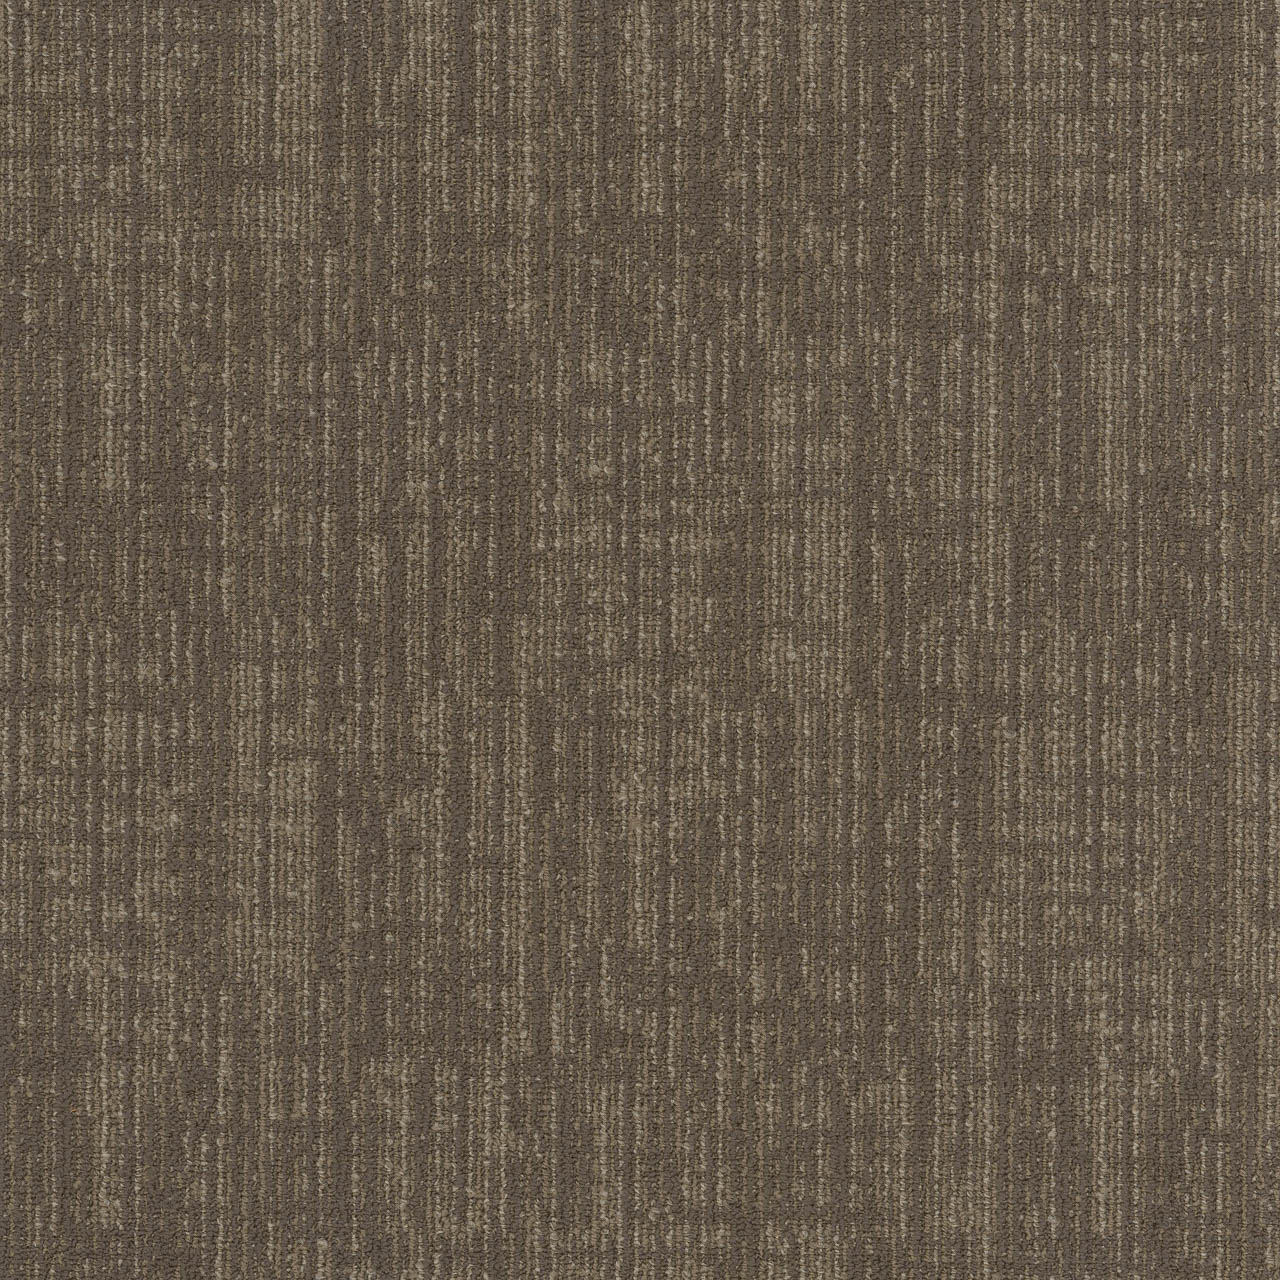 Amtico International: Colour Anchor Fizzle